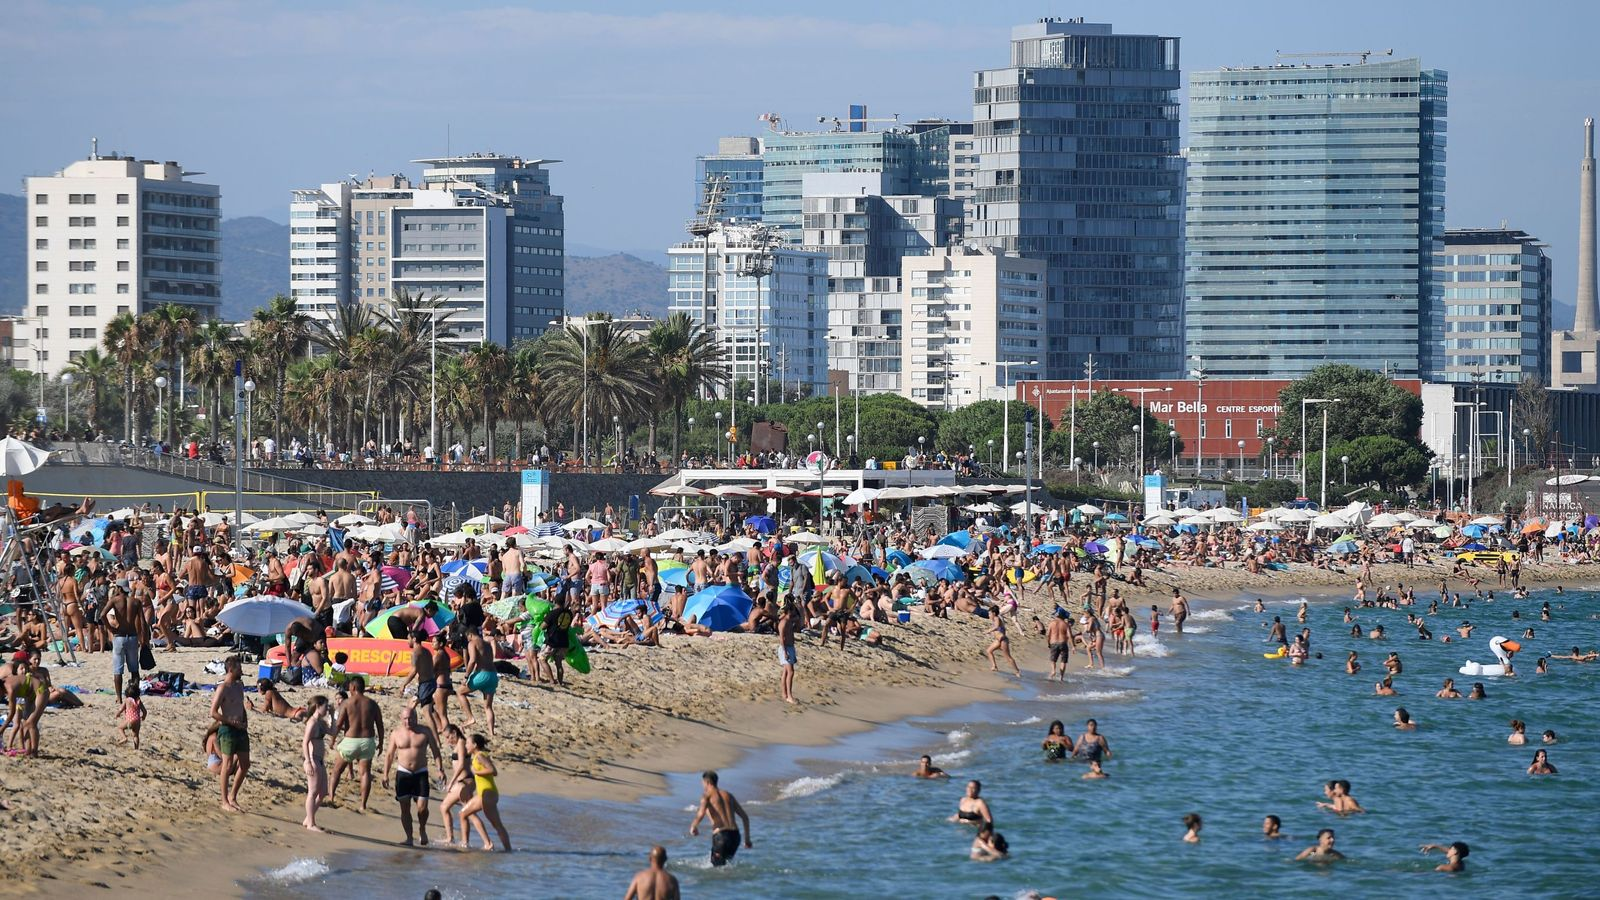 Coronavirus Barcelona Beaches Packed After Fed Up Locals Ignore Stay At Home Advice Amid Covid 19 Spike World News Sky News